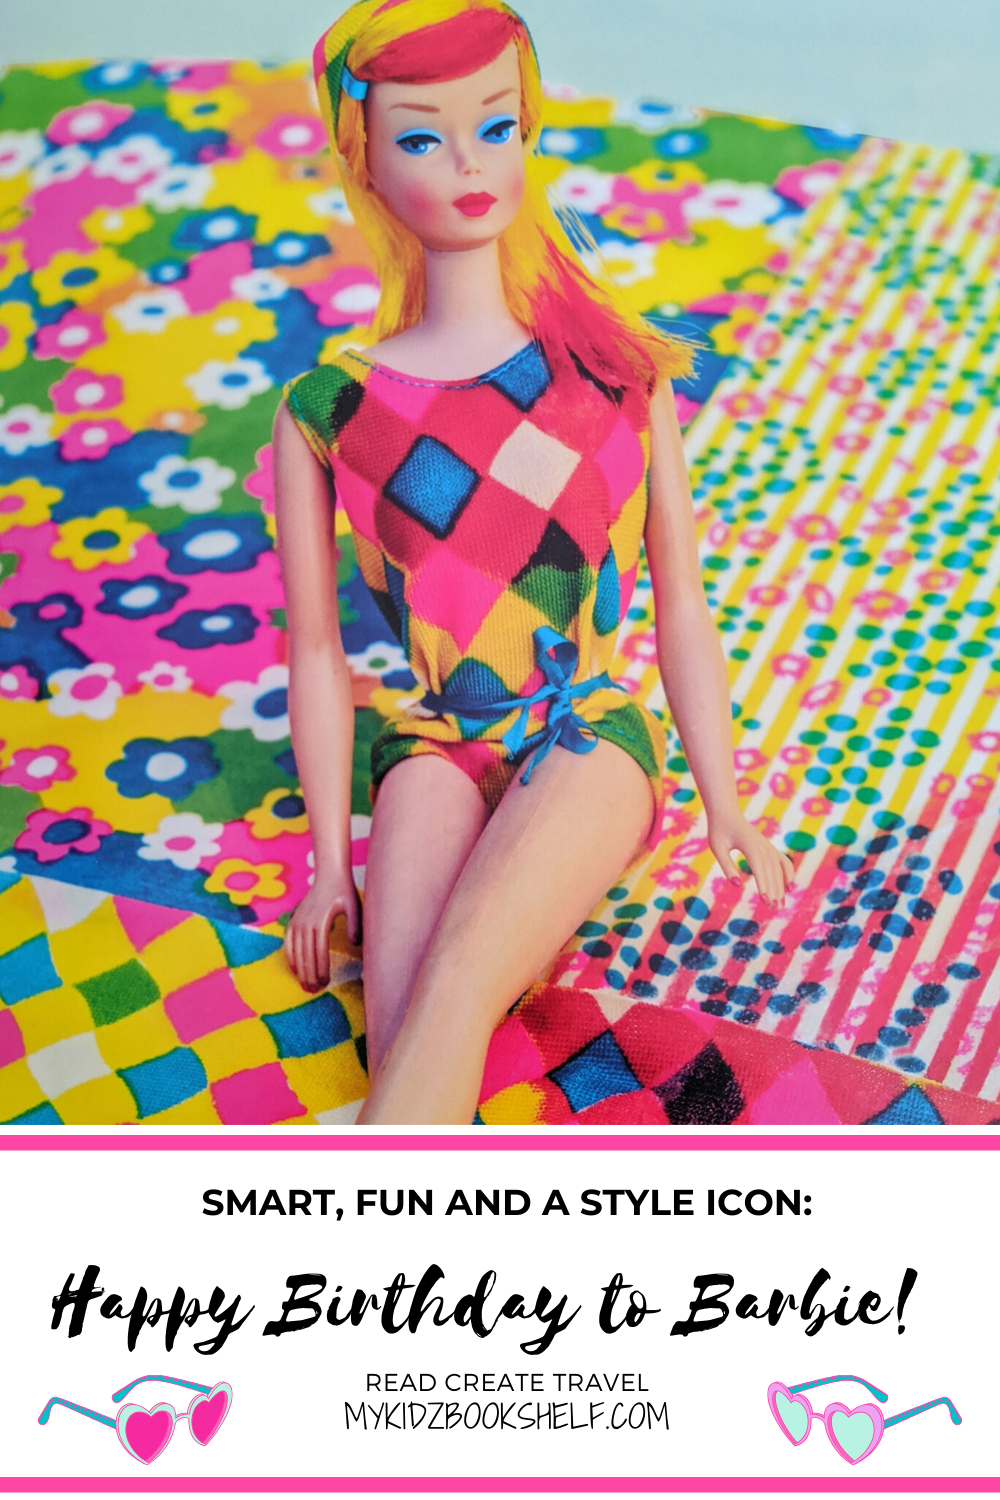 Pinterest pin Happy Birthday to Barbie shows Barbie on colorful papers